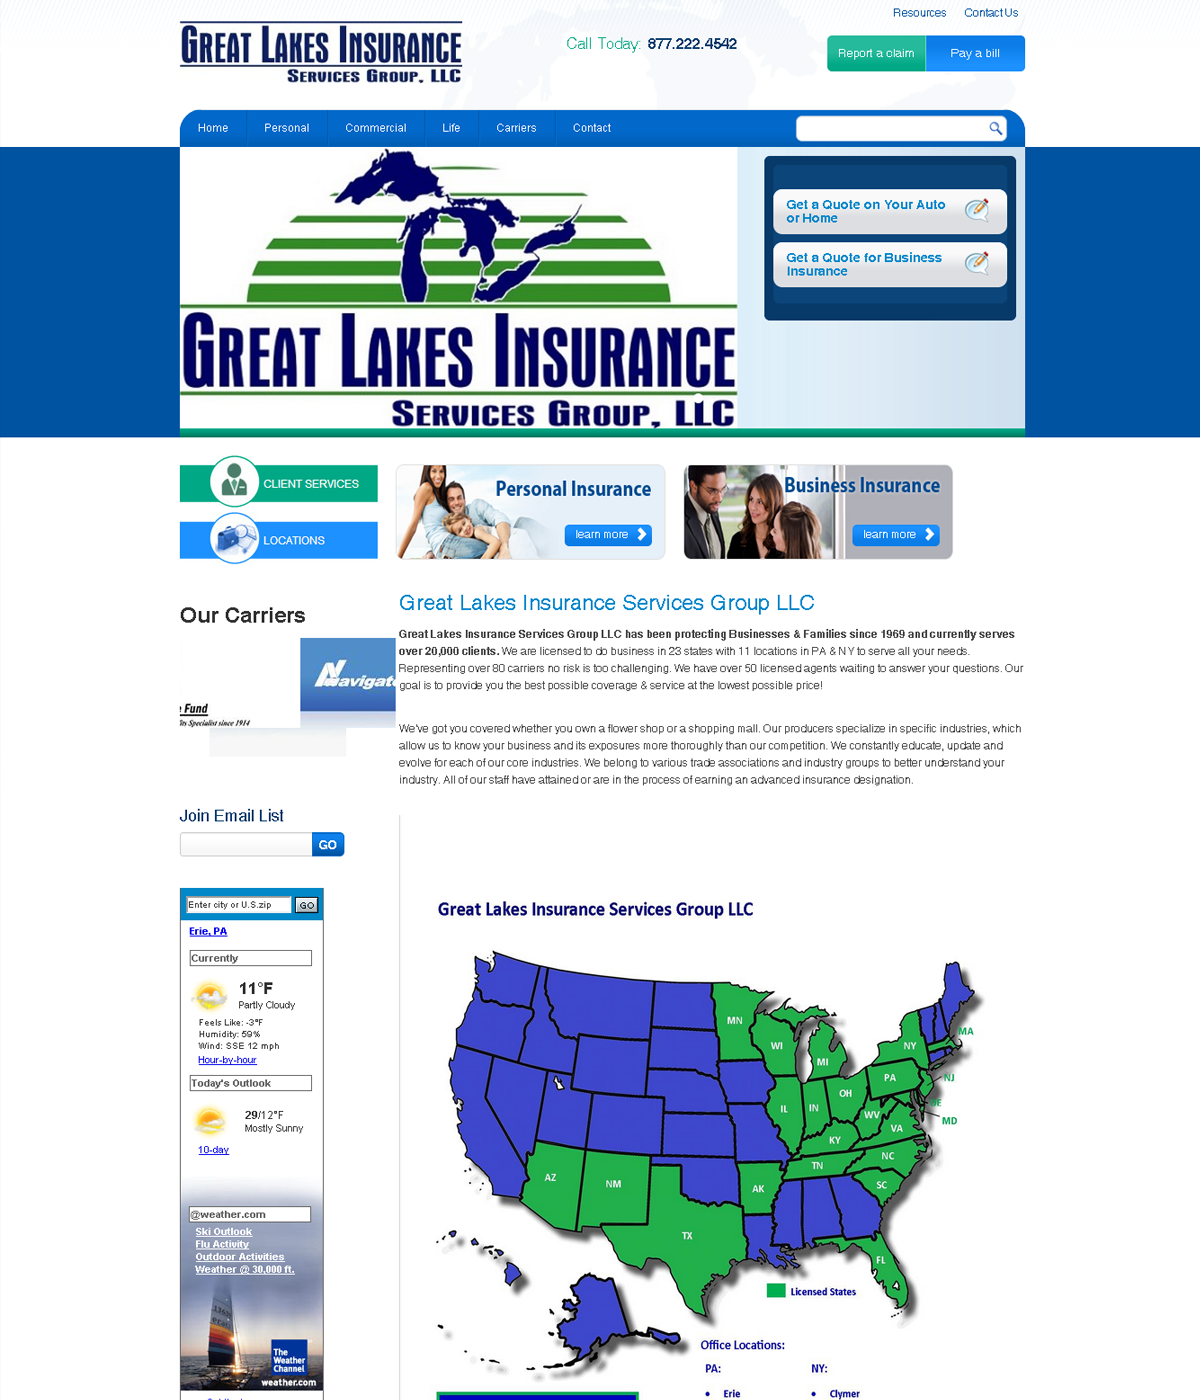 Great Lakes Insurance Services Group, LLC